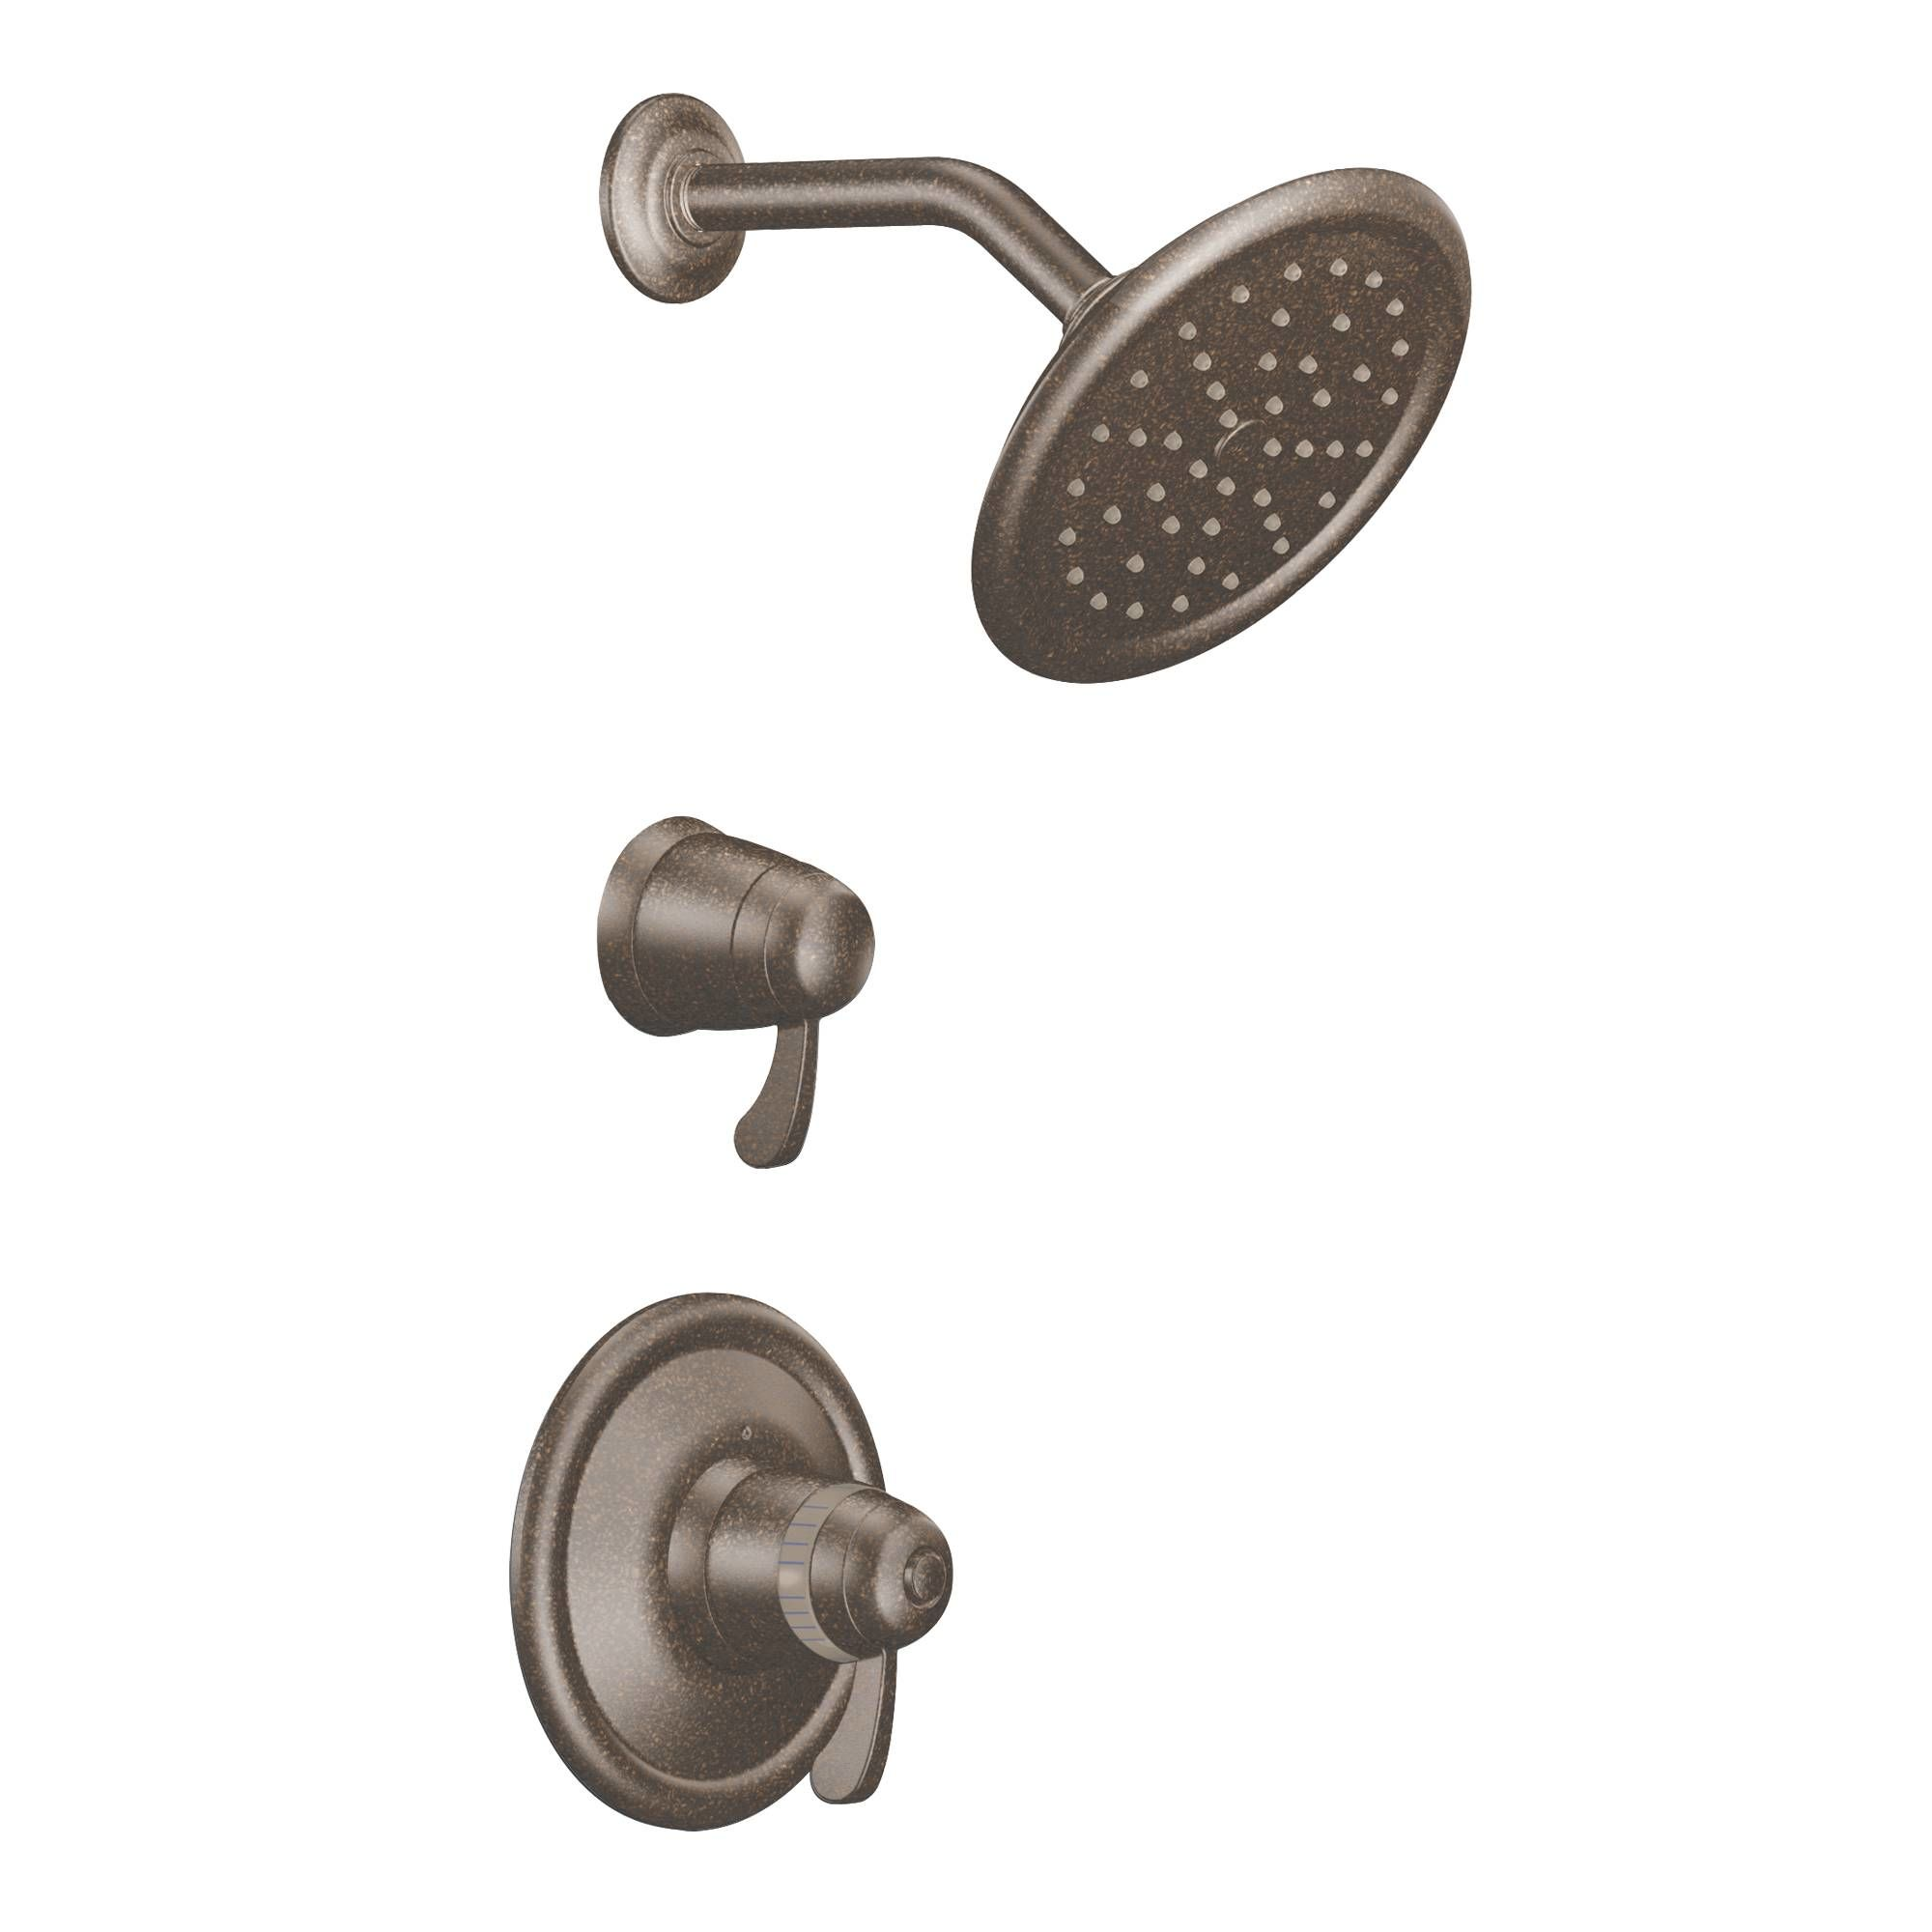 Moen 770 Chrome Shower System With Shower Head 2 Volume Controls And Hand  Shower Valves